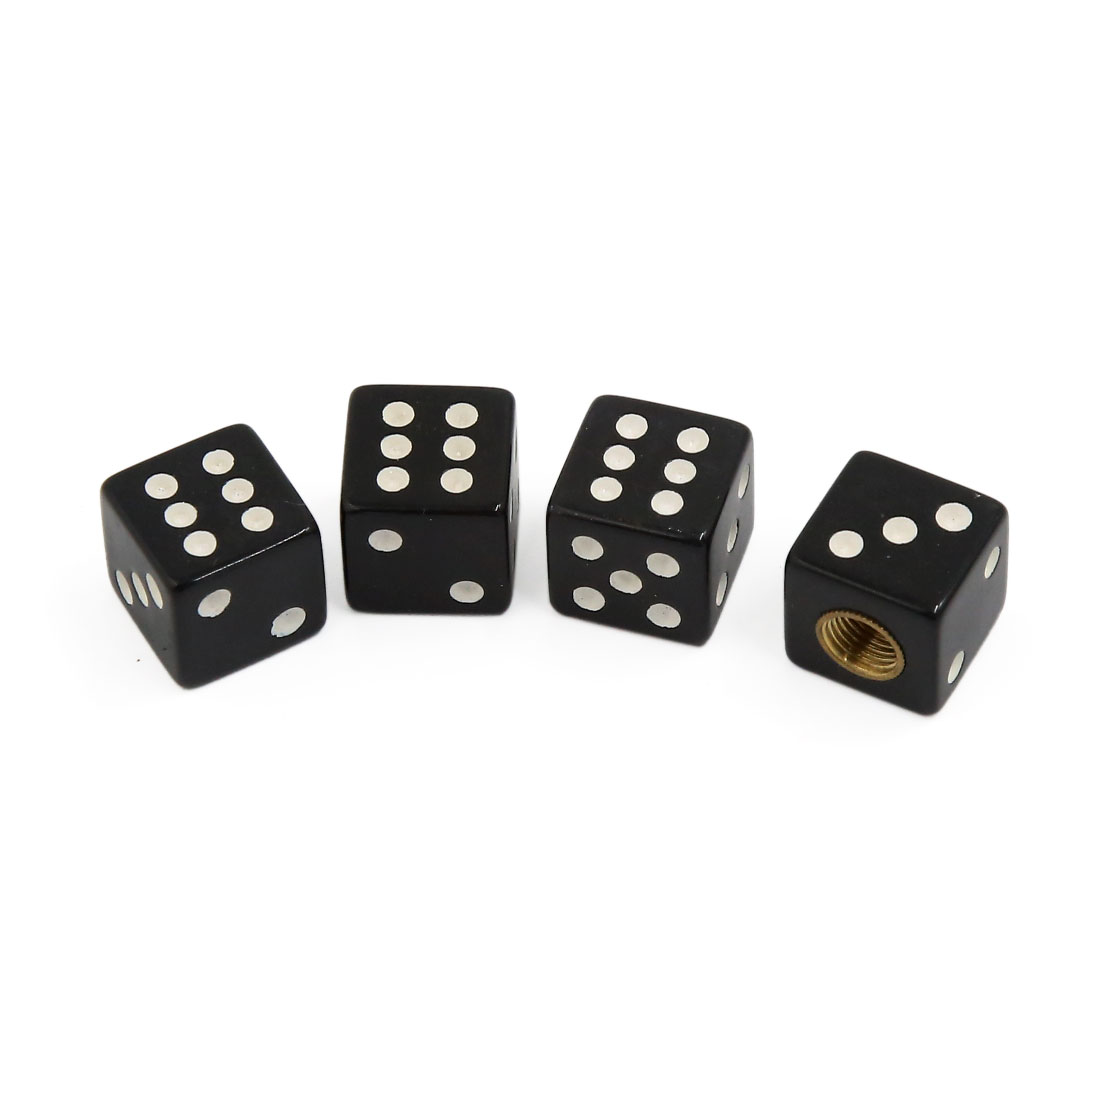 4pcs Black Dice Shape Universal Bike Car Truck Wheel Rim Tire Air Valve Stem Cap